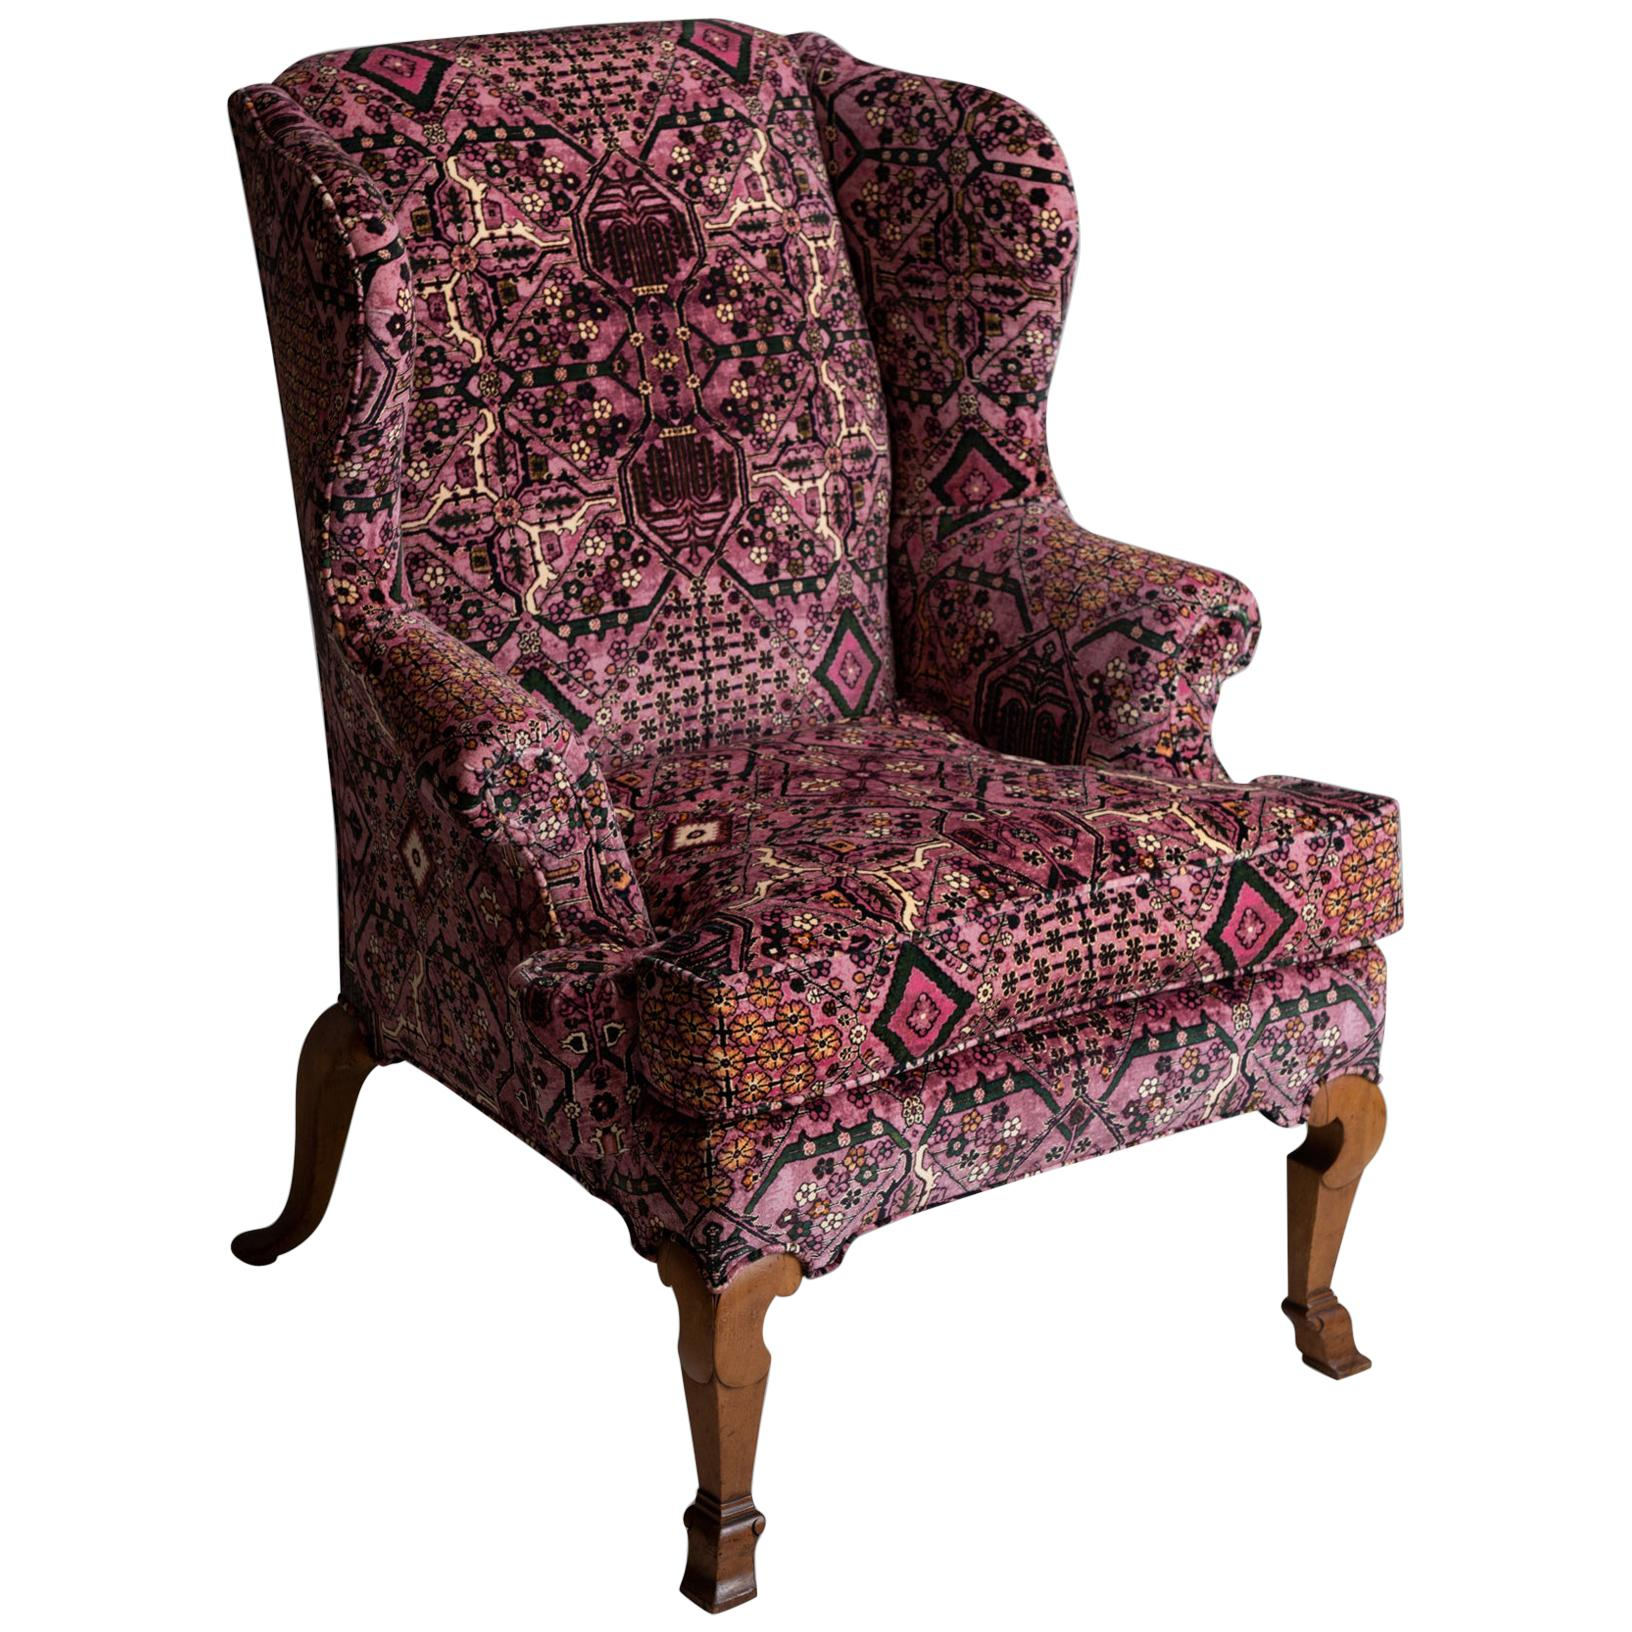 Walnut Wing Chair in 100% Cotton Velvet from House of Hackney